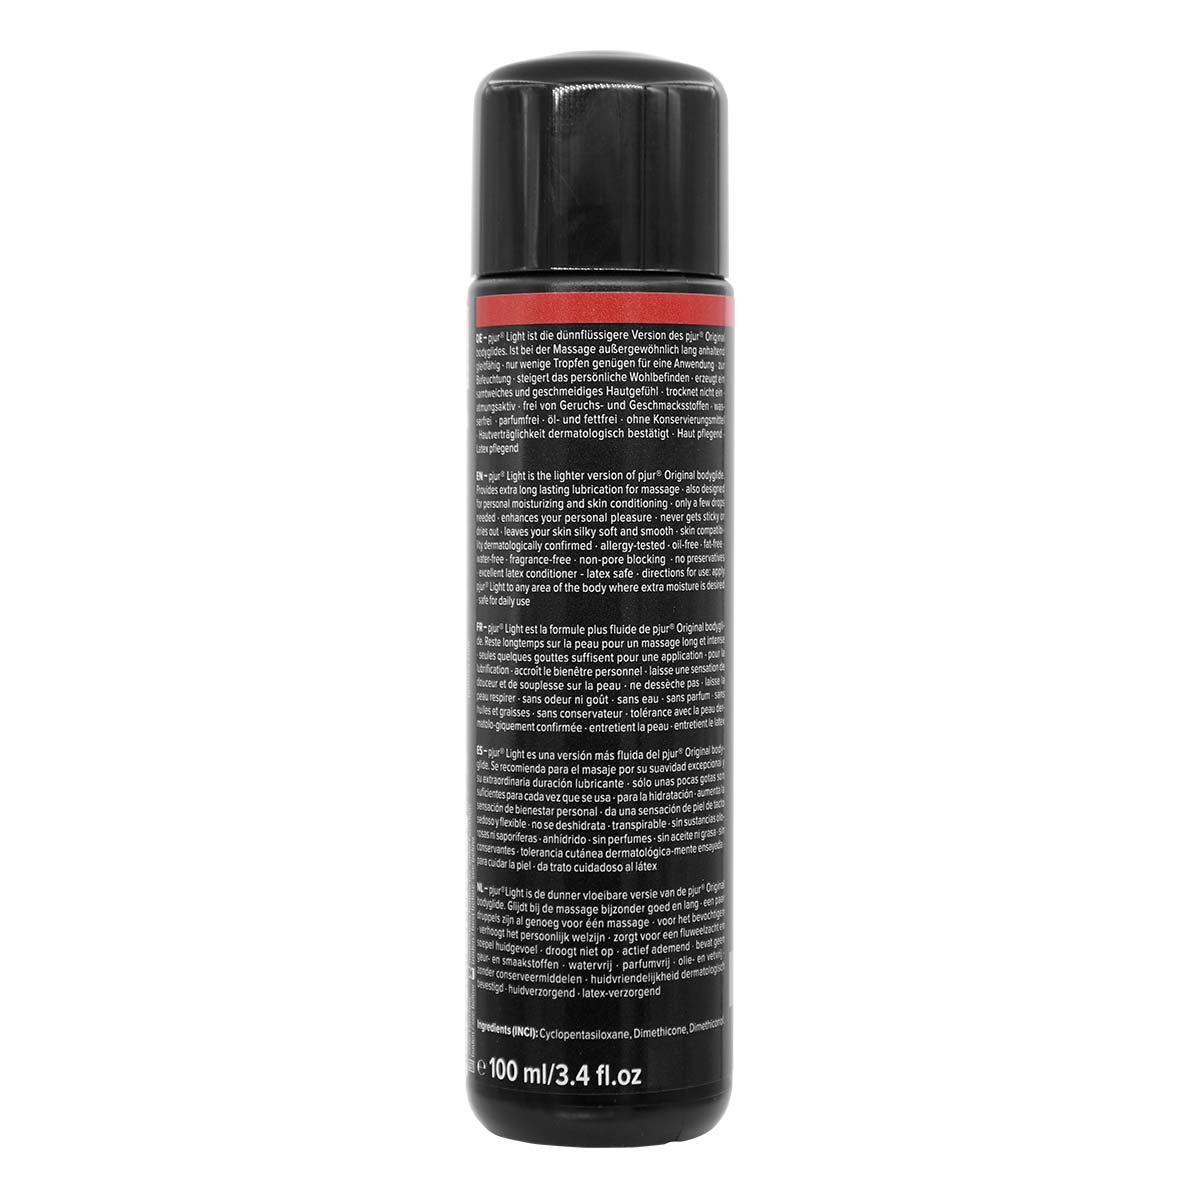 pjur LIGHT 100ml Silicone-based Lubricant